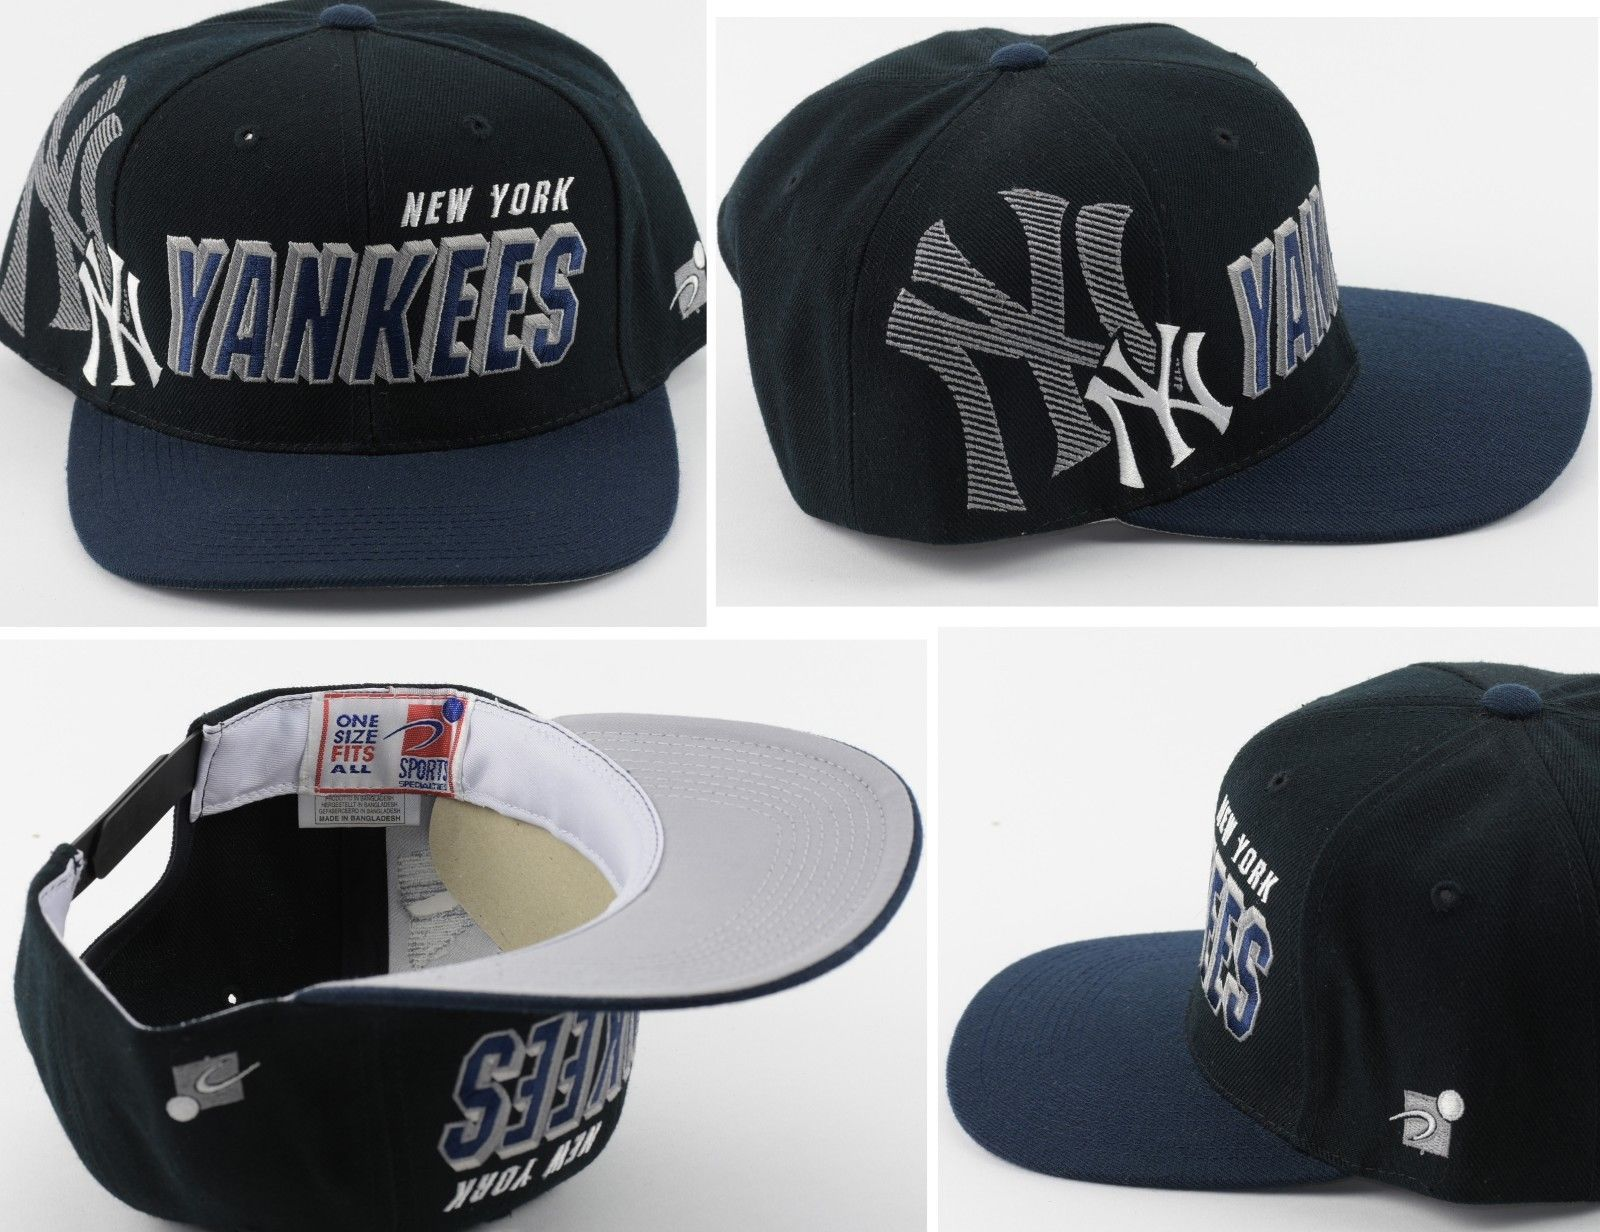 98ce0b02c8e0b Vintage New York Yankees Sports Specialties Shadow Script Snapback Hat Cap  MLB